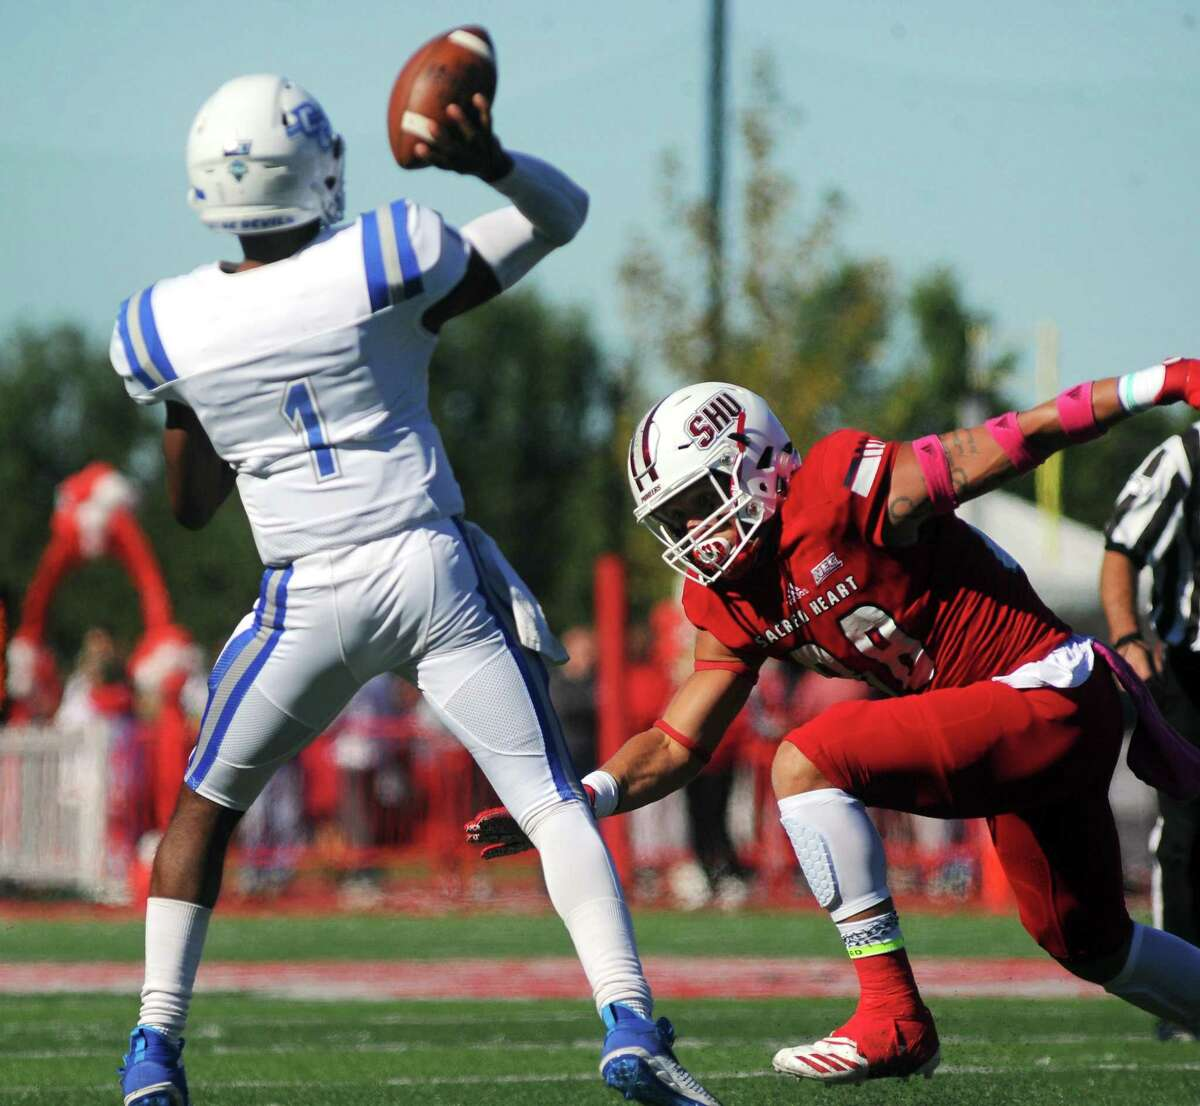 Sacred Heart RJ Trimble-Edwards converges on Central Connecticut QB Aaron Winchester during football action in Fairfield on Oct. 5, 2019.